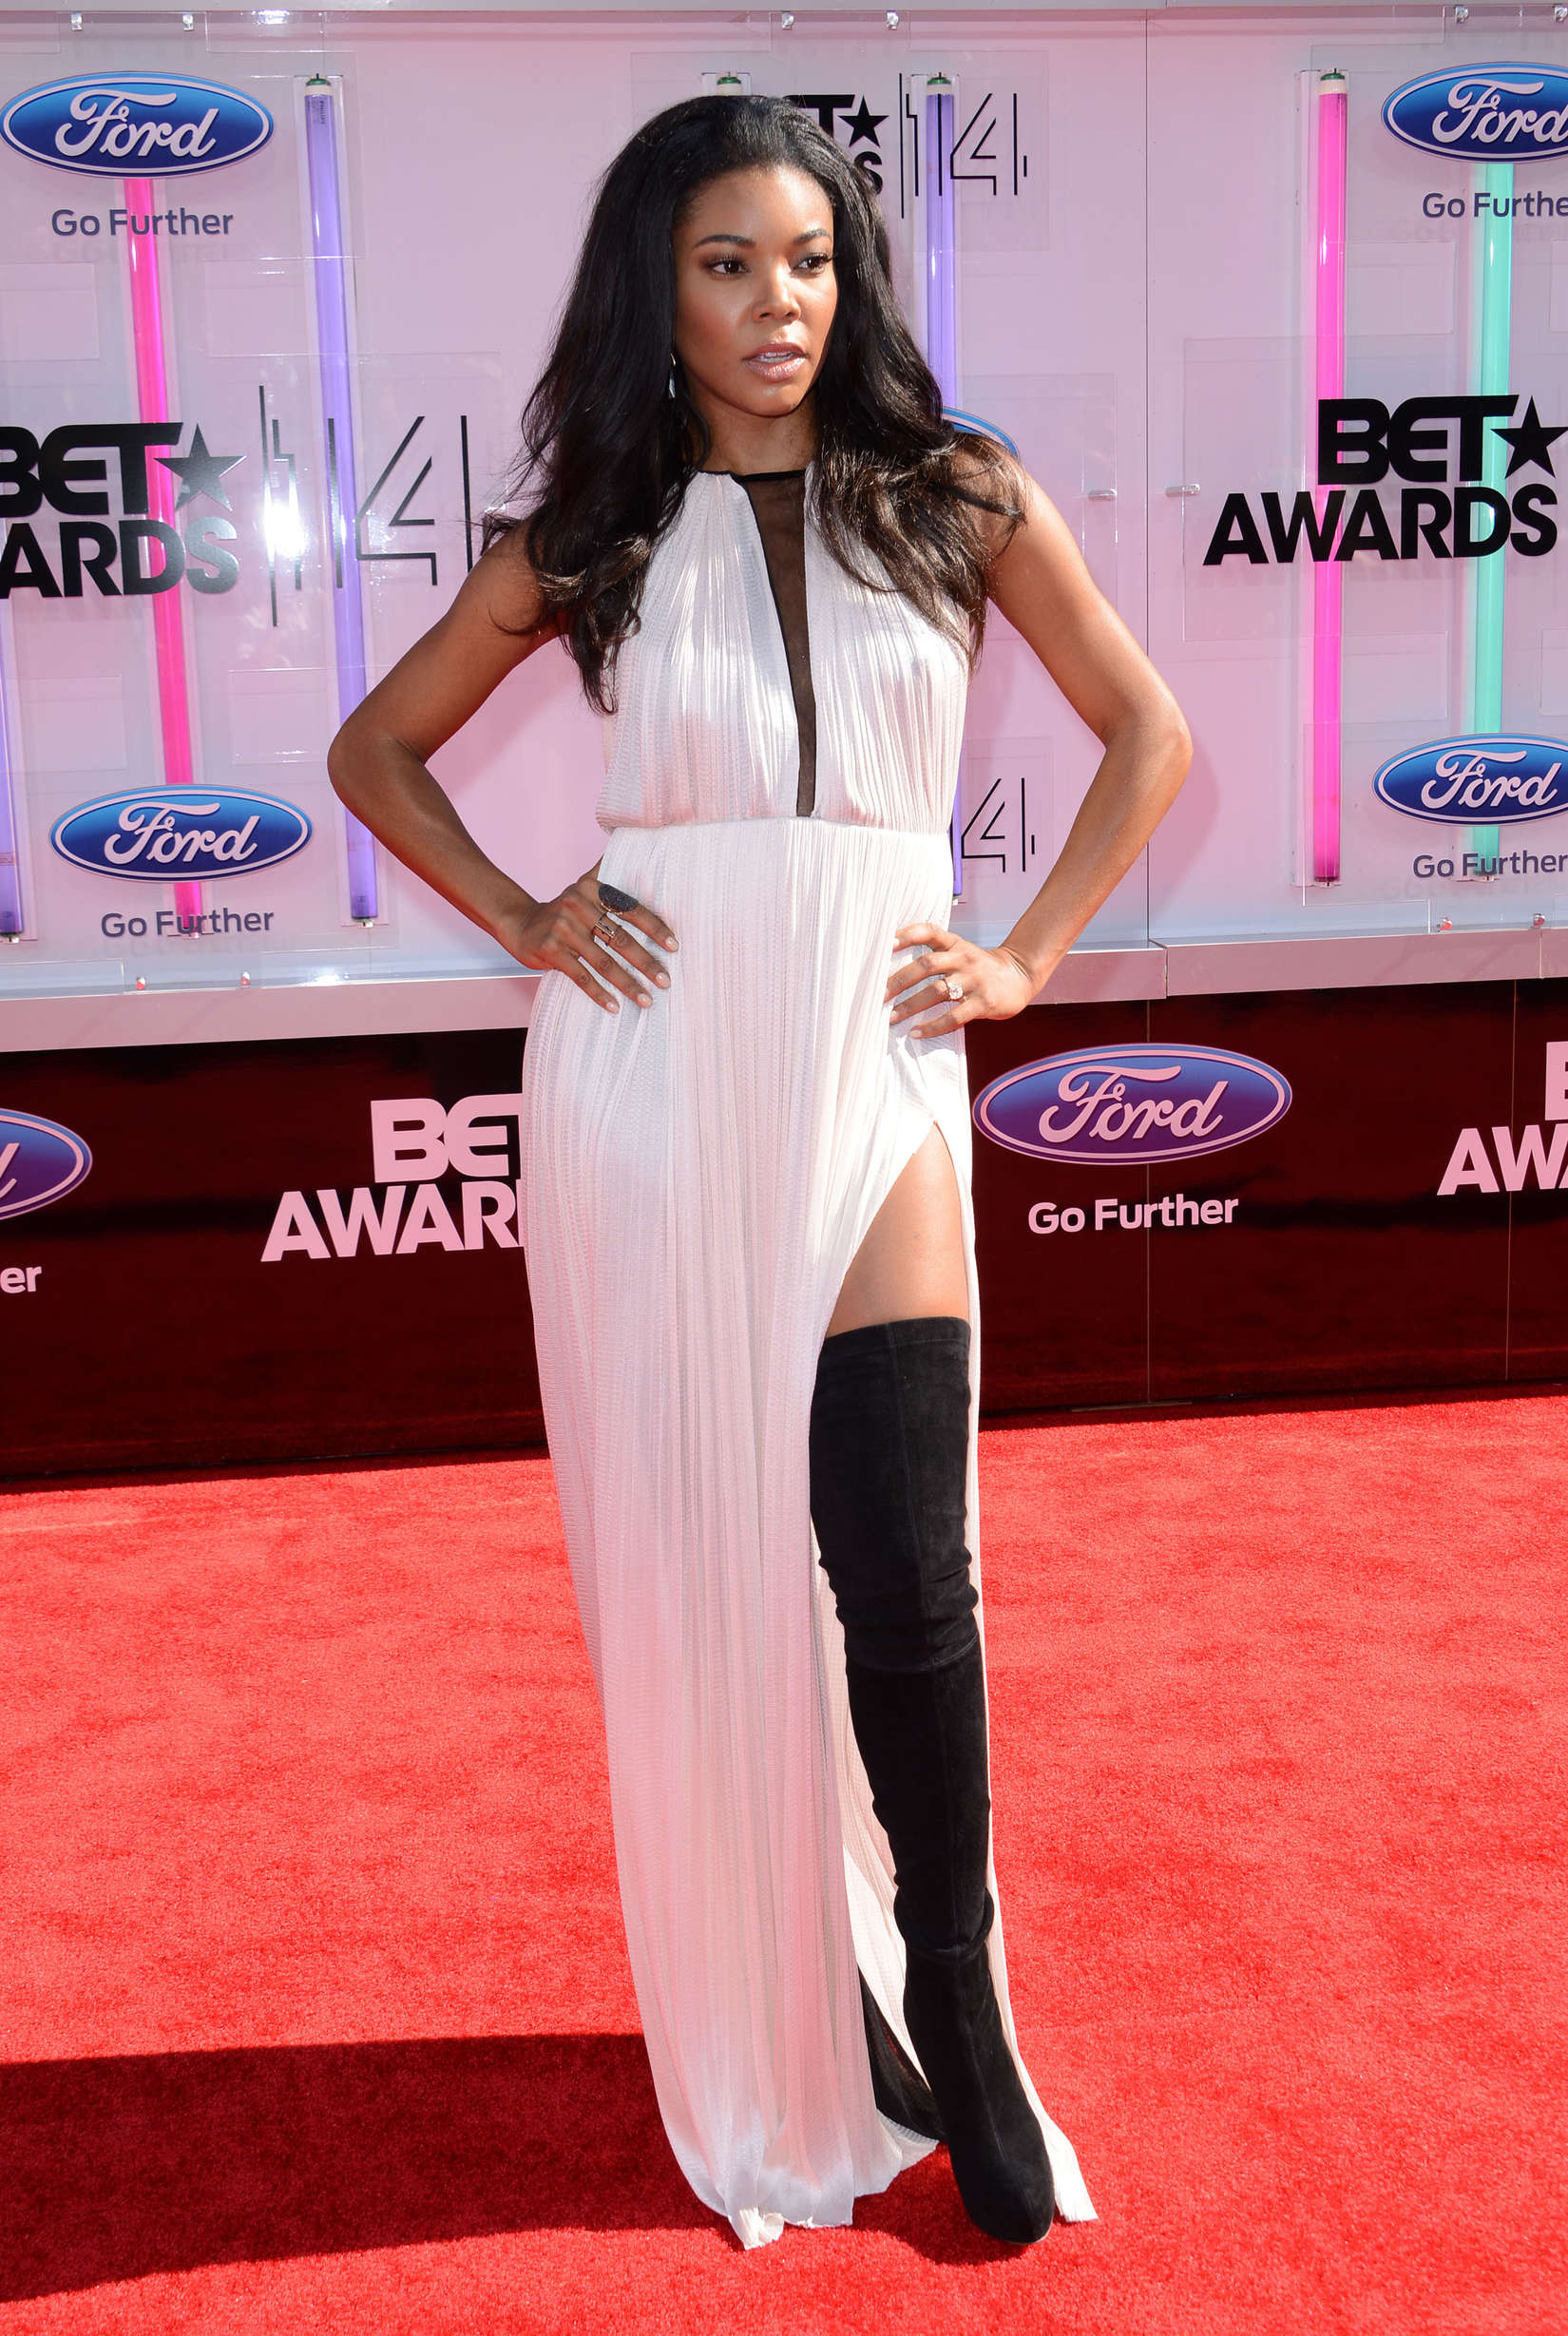 Gabrielle Union – BET Awards 2014 in LA -01 – GotCeleb